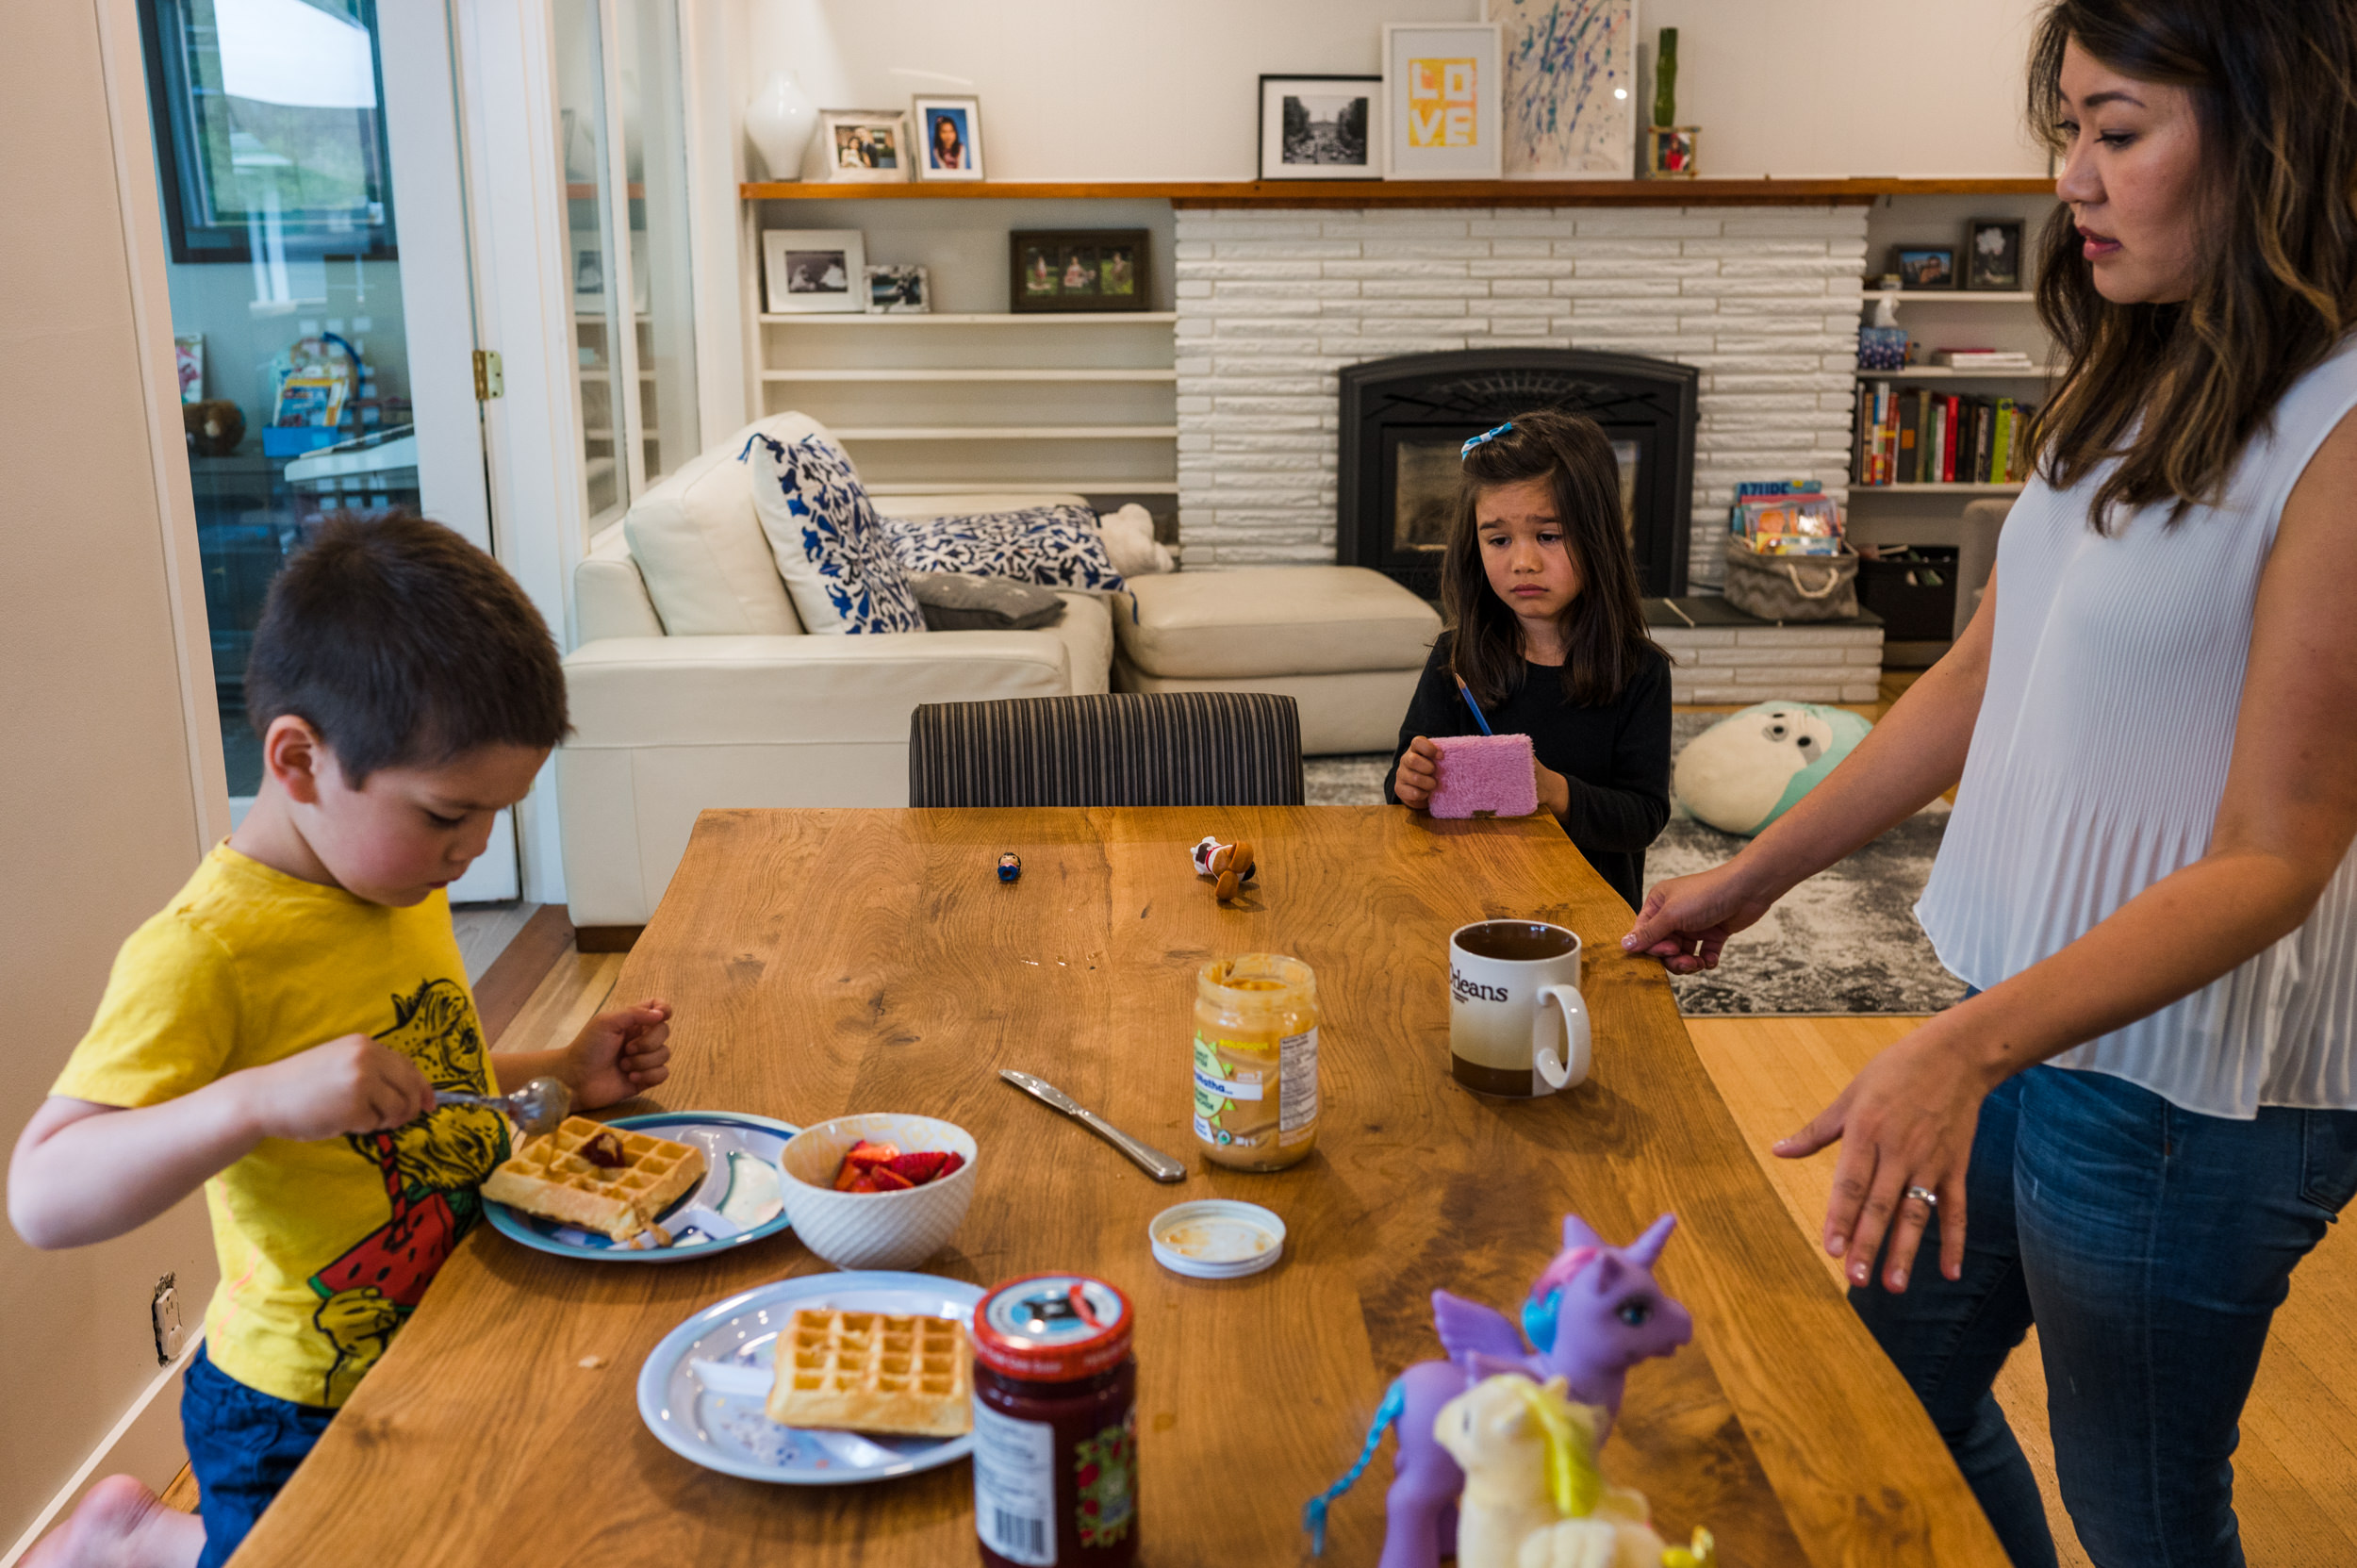 Mom watching her son scooping a lot of peanut butter onto his waffle while his sister appears upset.